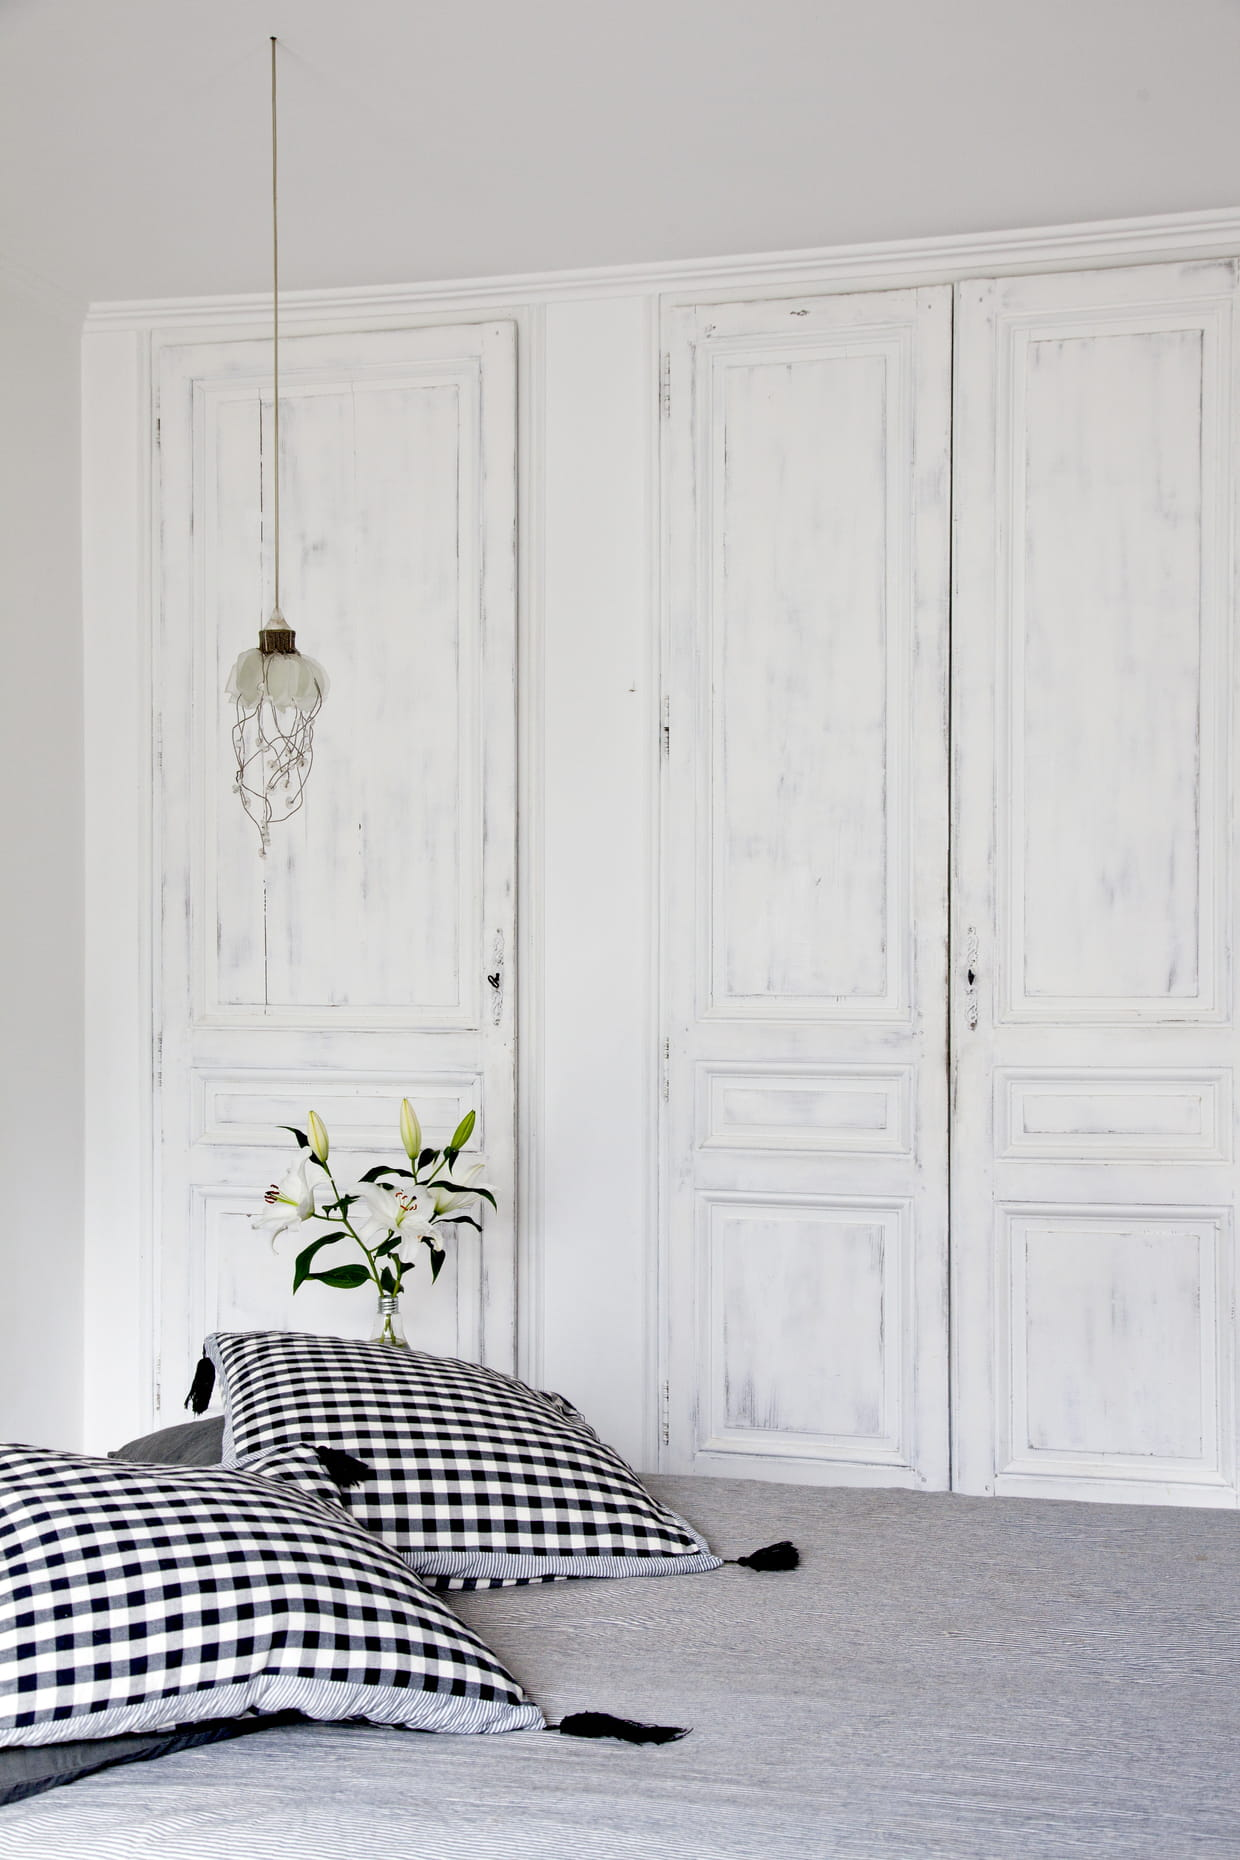 patines de portes anciennes. Black Bedroom Furniture Sets. Home Design Ideas